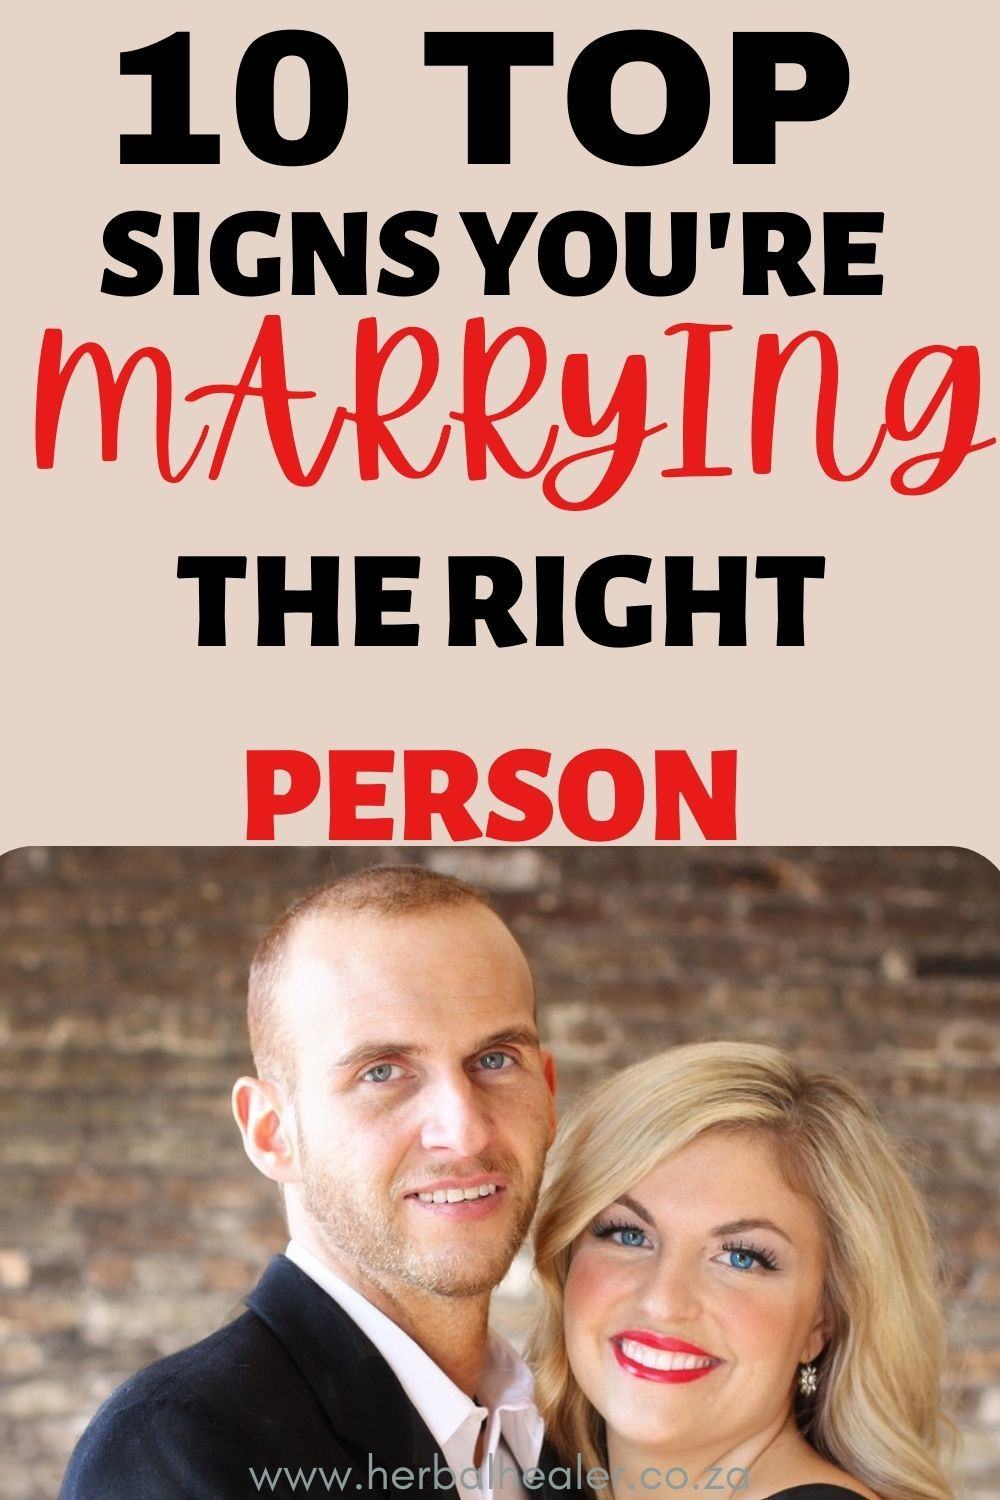 10 Top Signs